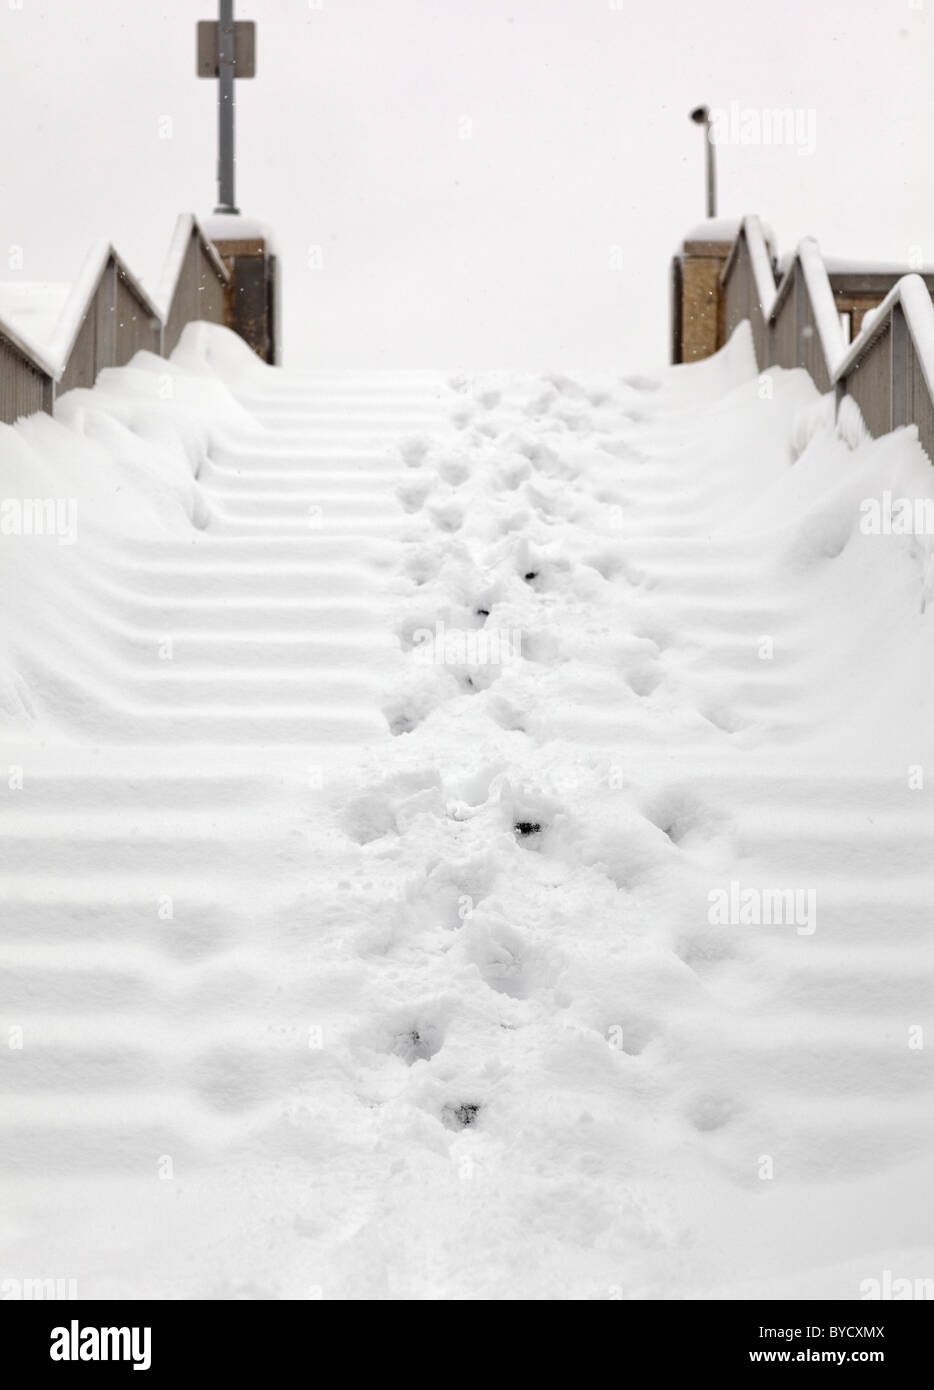 Outdoor stairs covered in snow, Winnipeg, Manitoba, Canada - Stock Image